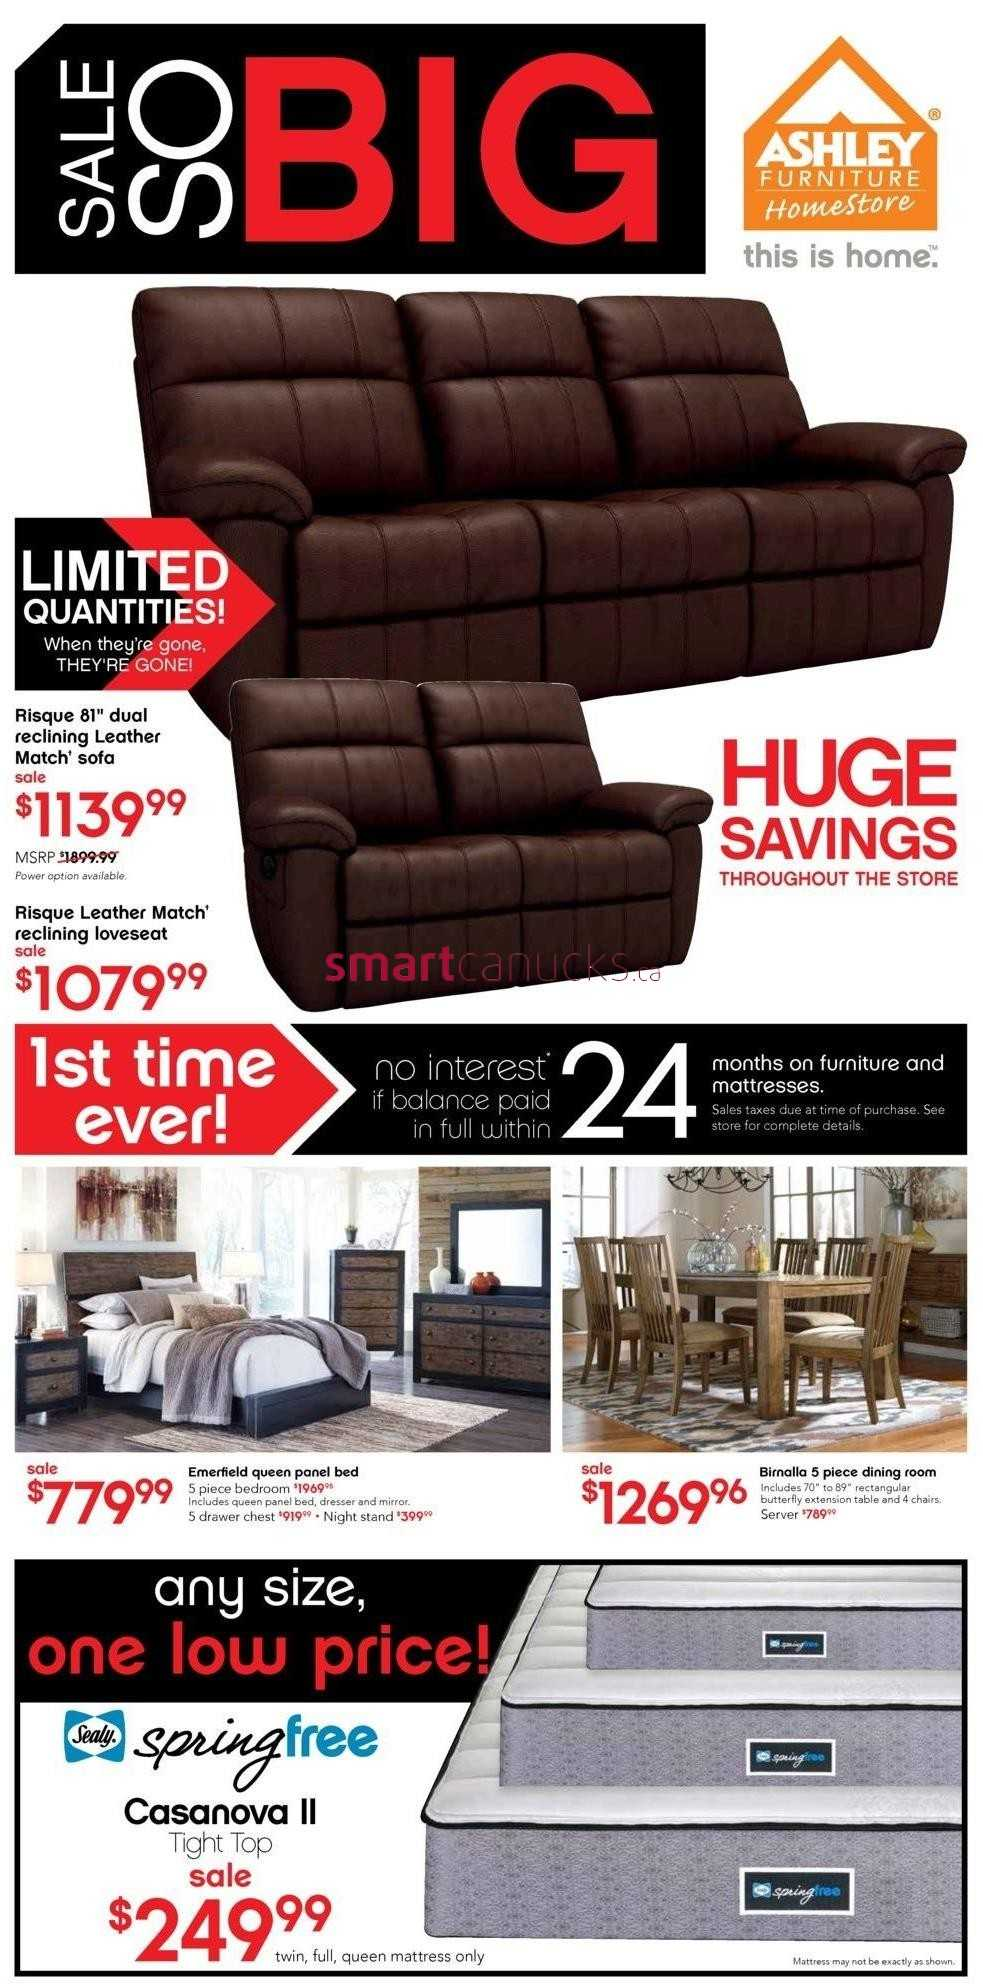 Ashley Furniture Coupons 2017 2018 Best Cars Reviews